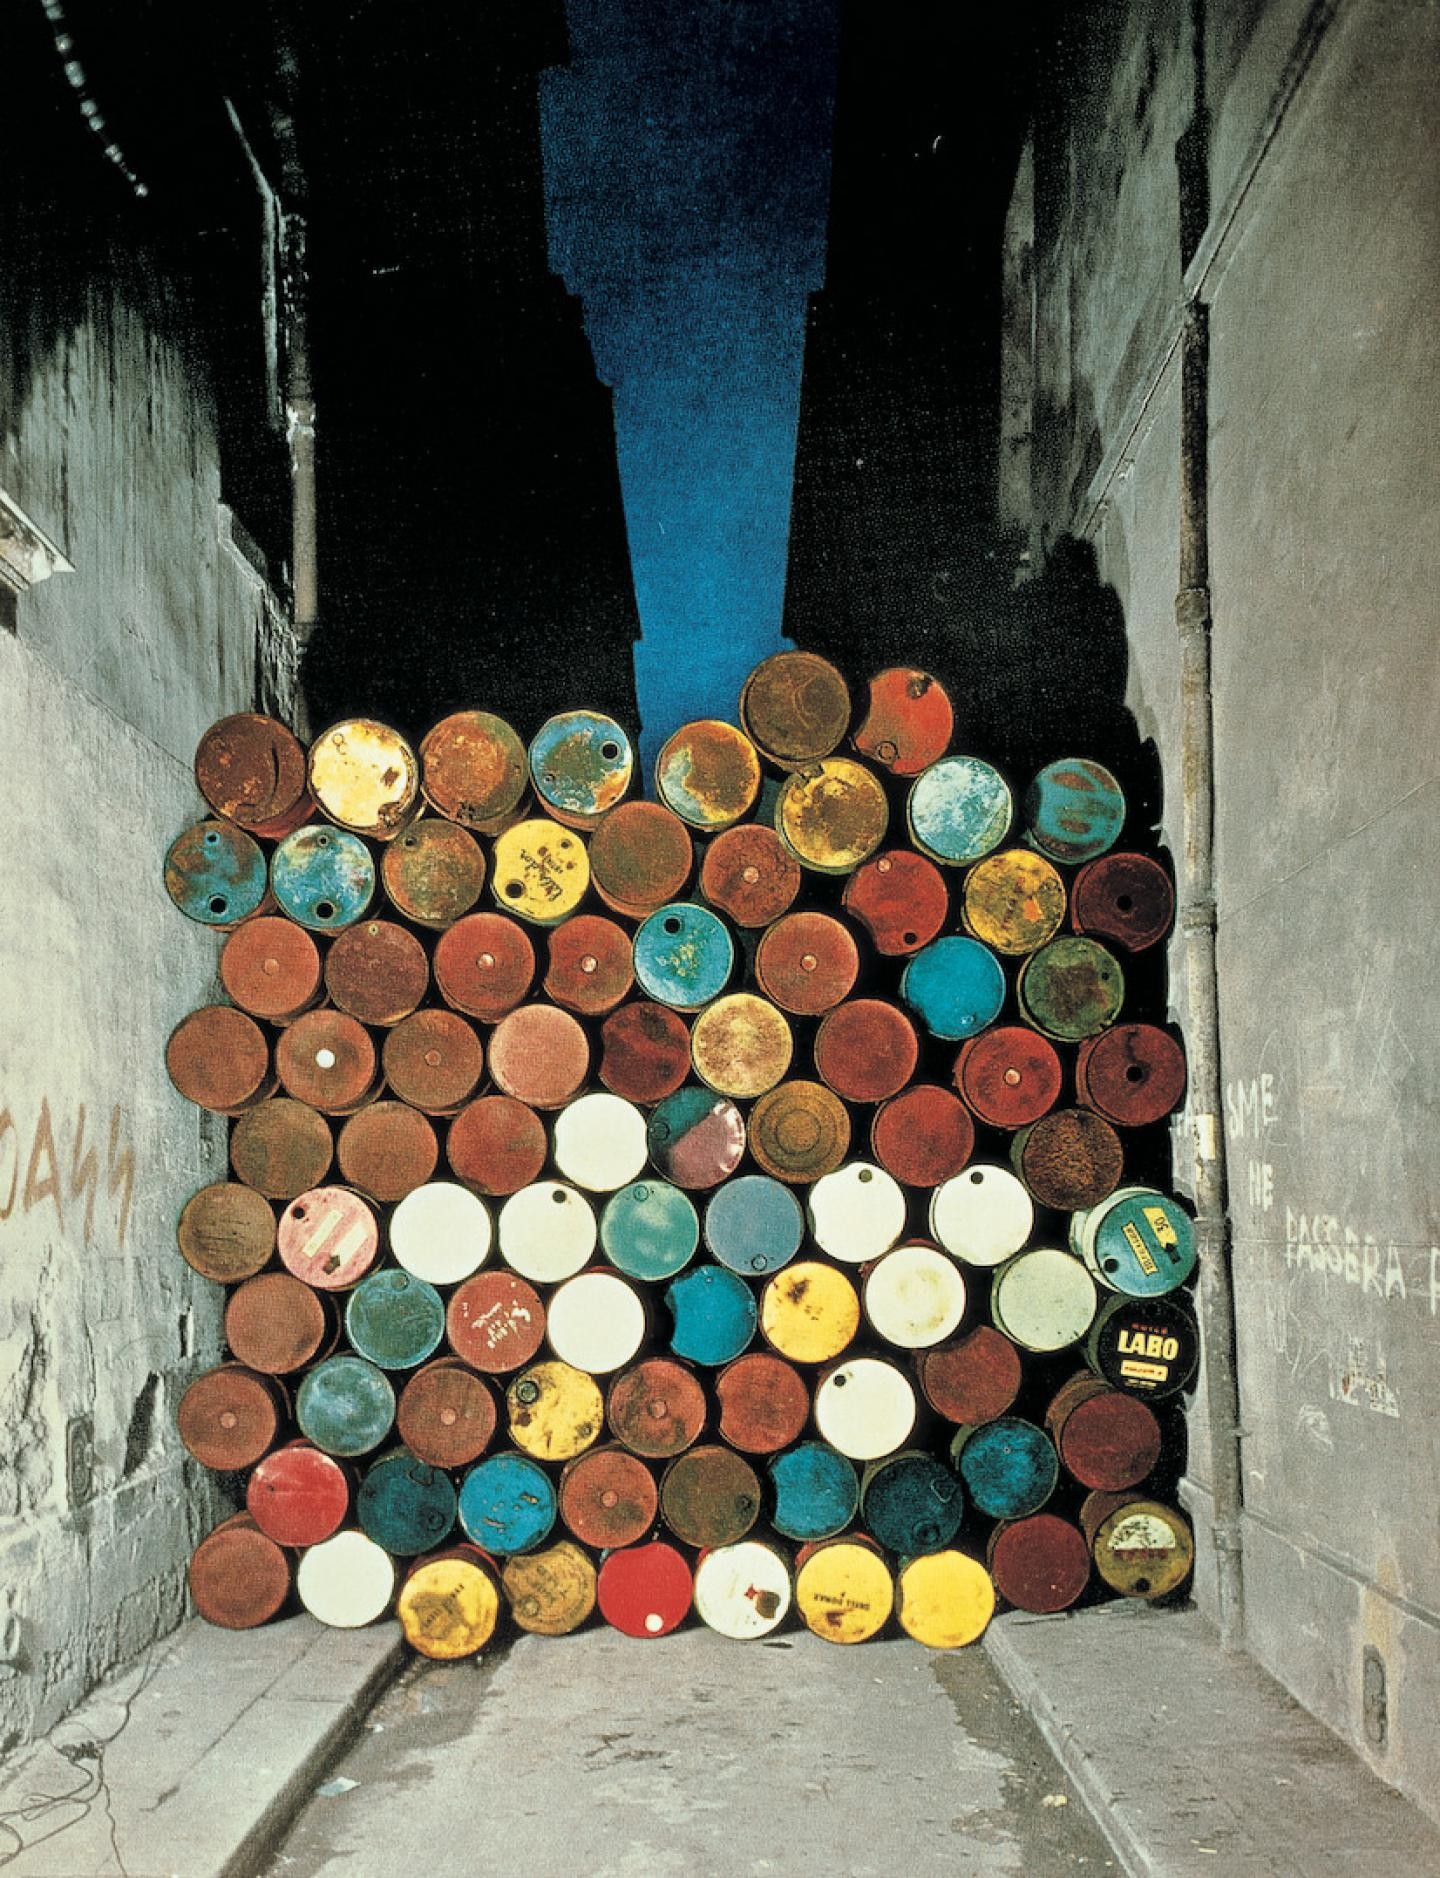 Christo and Jeanne-Claude, Wall of Barrels - The Iron Curtain, Rue Visconti, Paris, 1961-62  Courtesy of the artist, Photo: Jean-Dominique Lajoux, © 1962 Christo